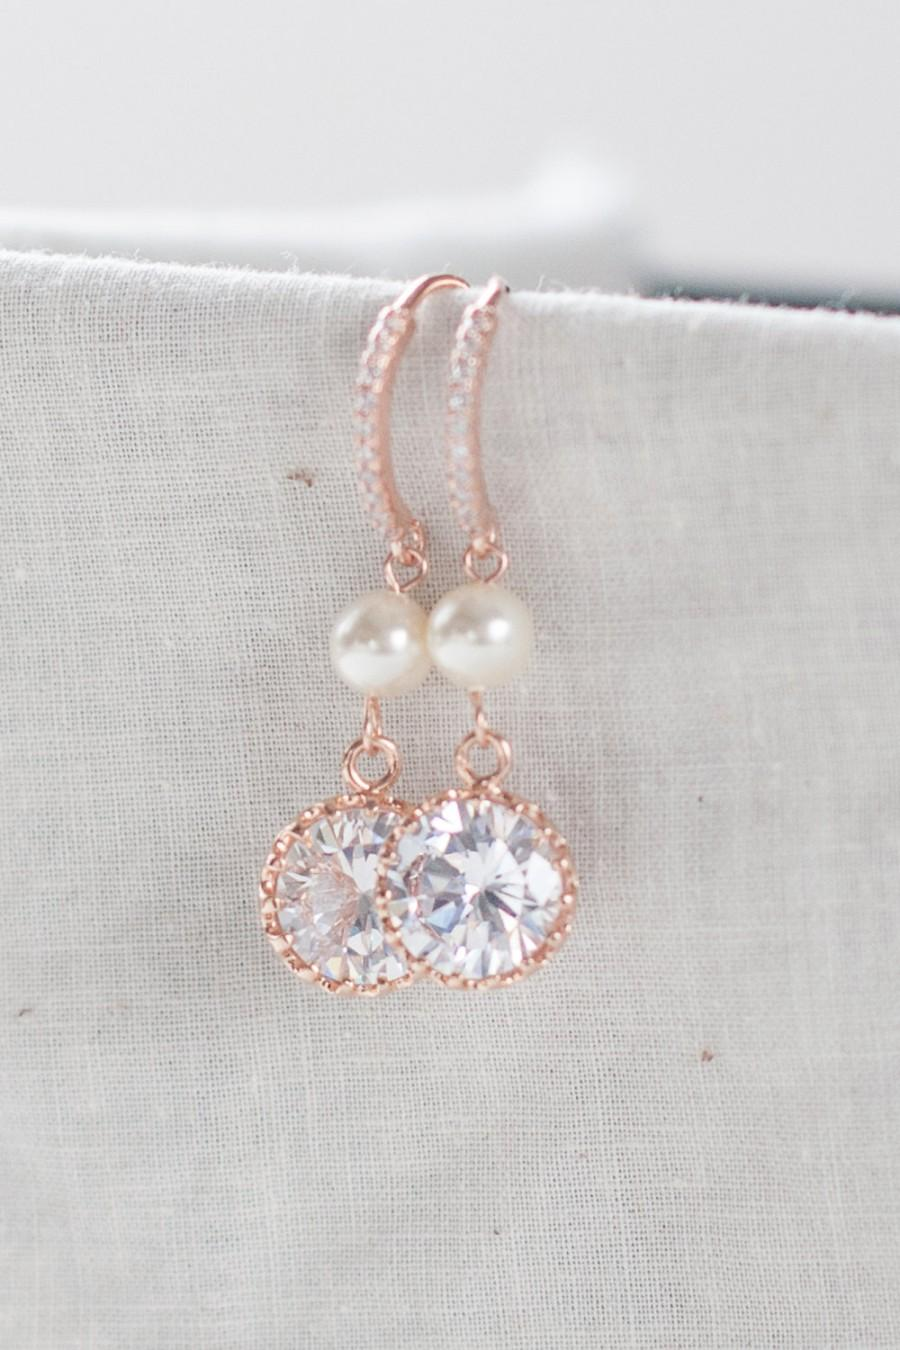 Rose Gold And Pearl Earrings Pink Diamond Pendant Dangle Bridal Jewelry Prom Wedding